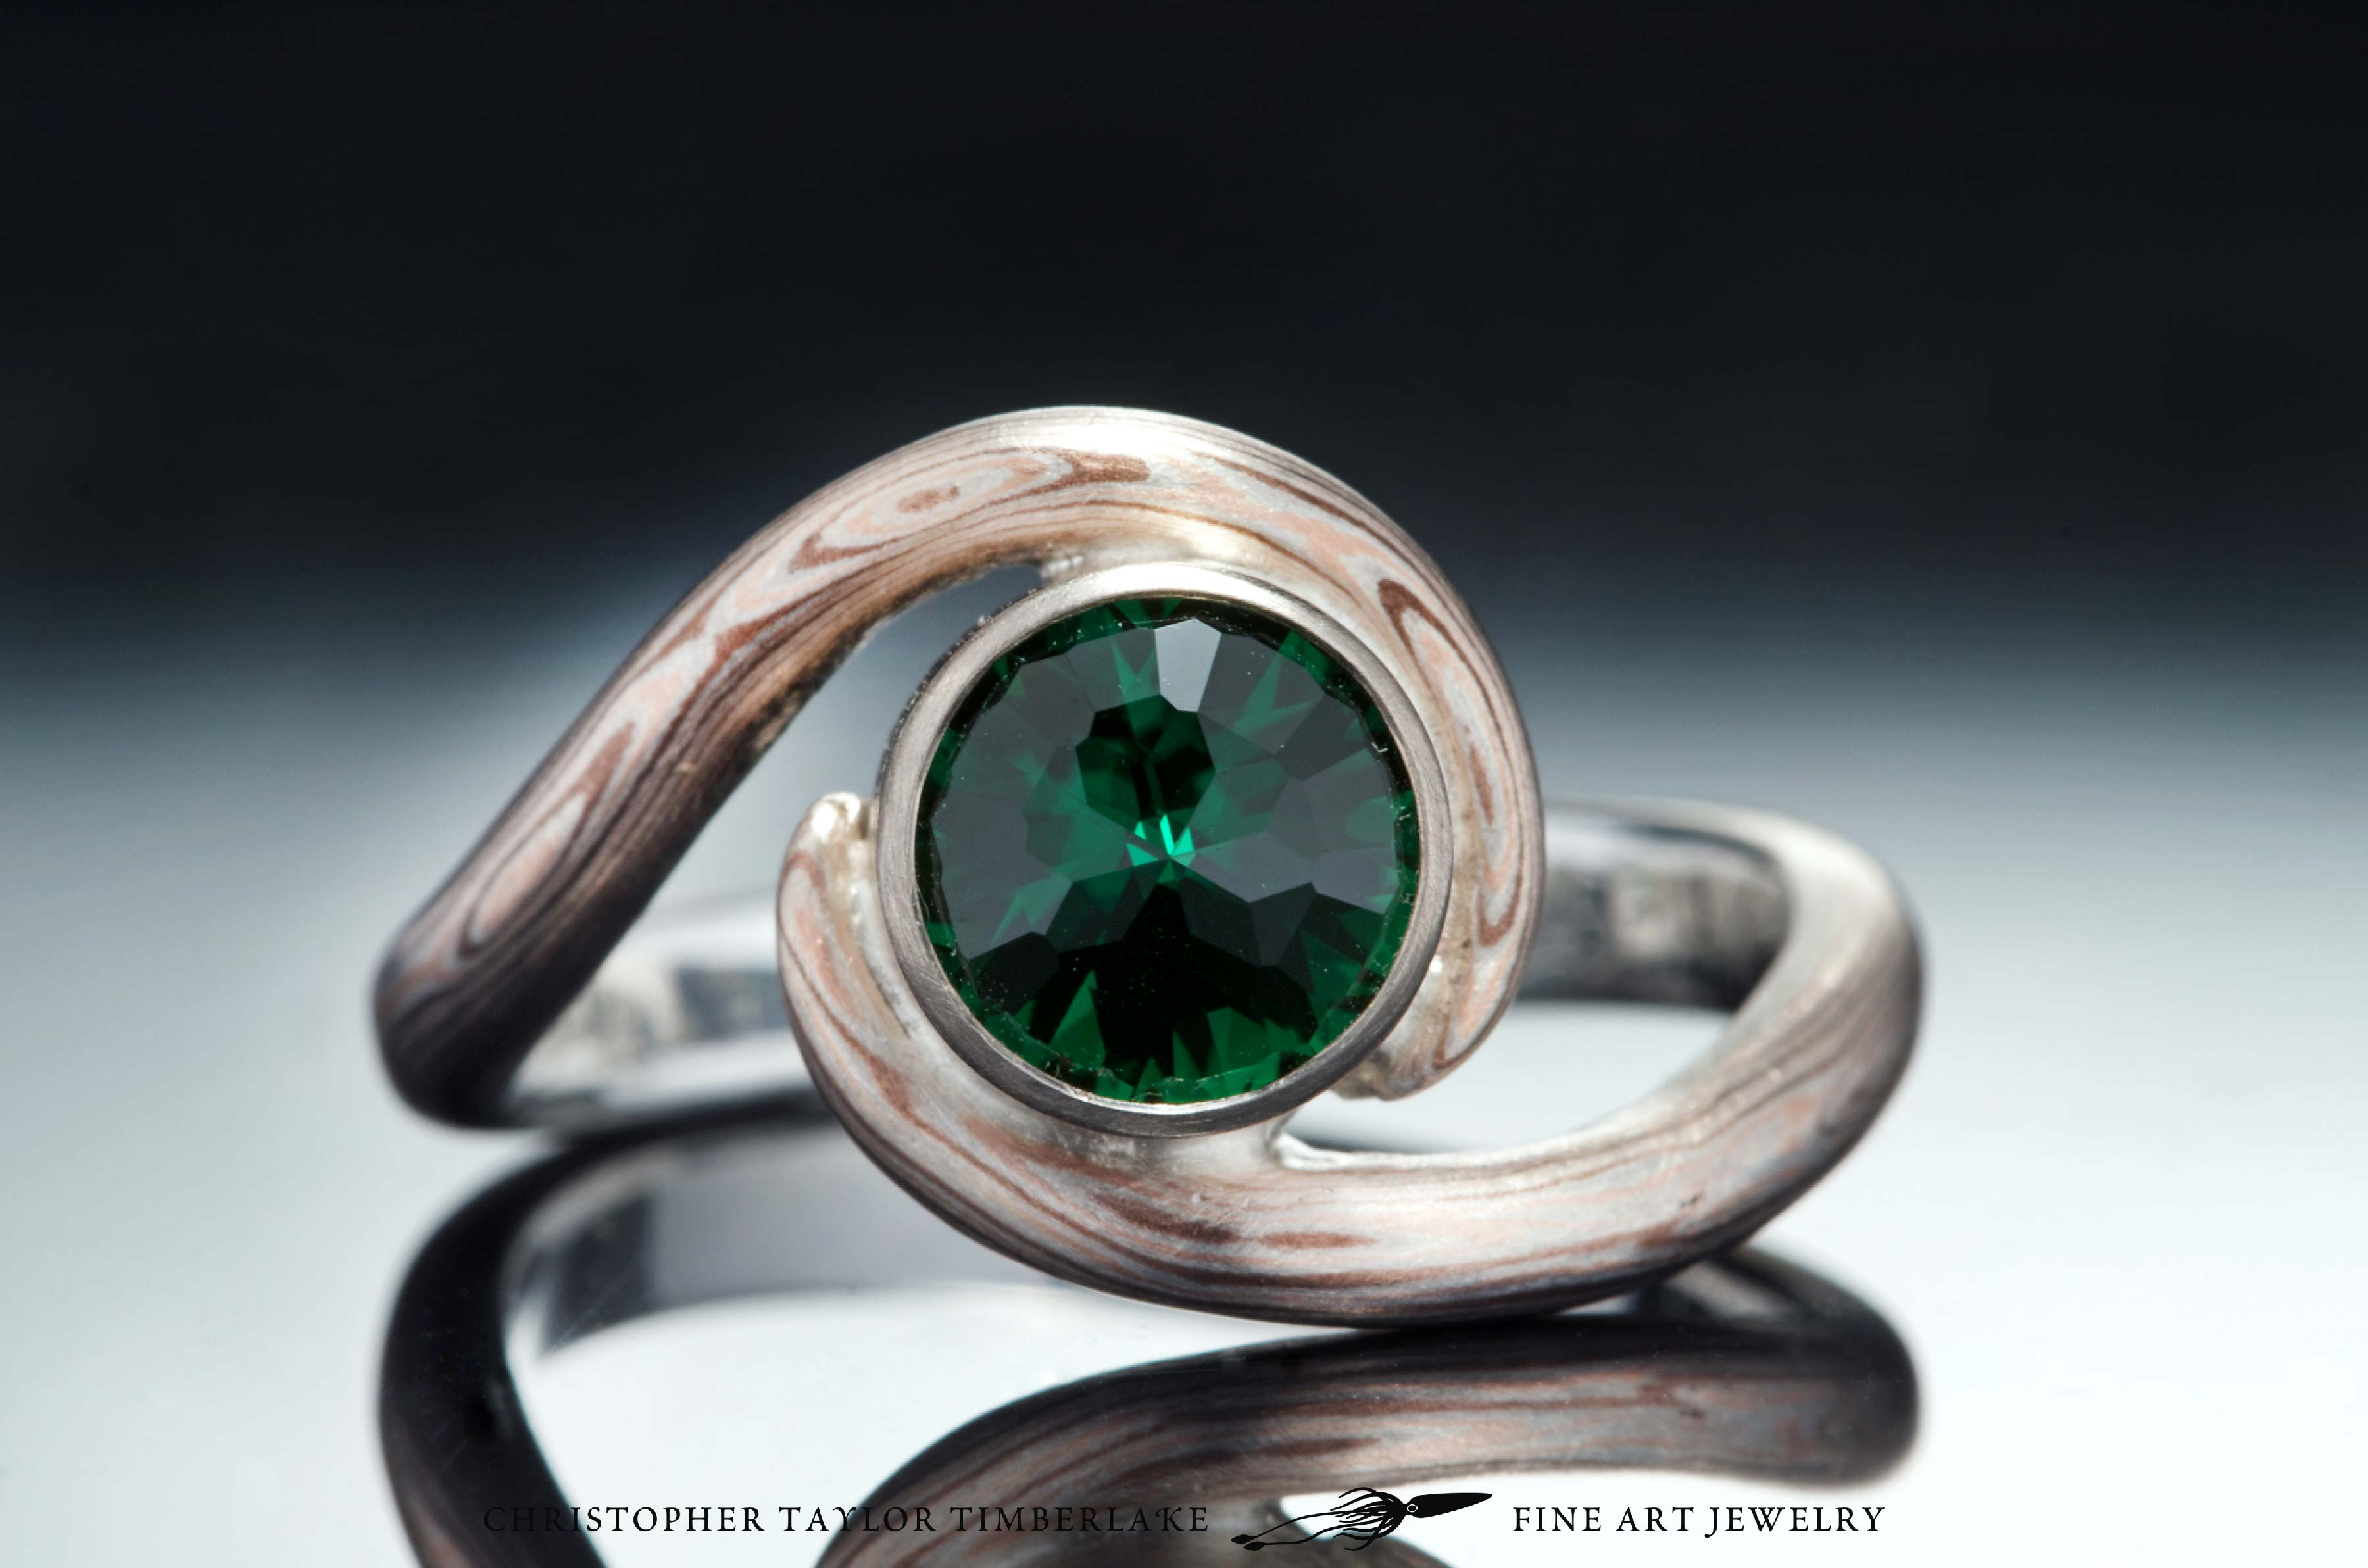 Christopher Taylor Timberlake Mokumé Gane 14K Rose Gold, Shakudo, and Sterling Silver Ring with Green Tourmaline